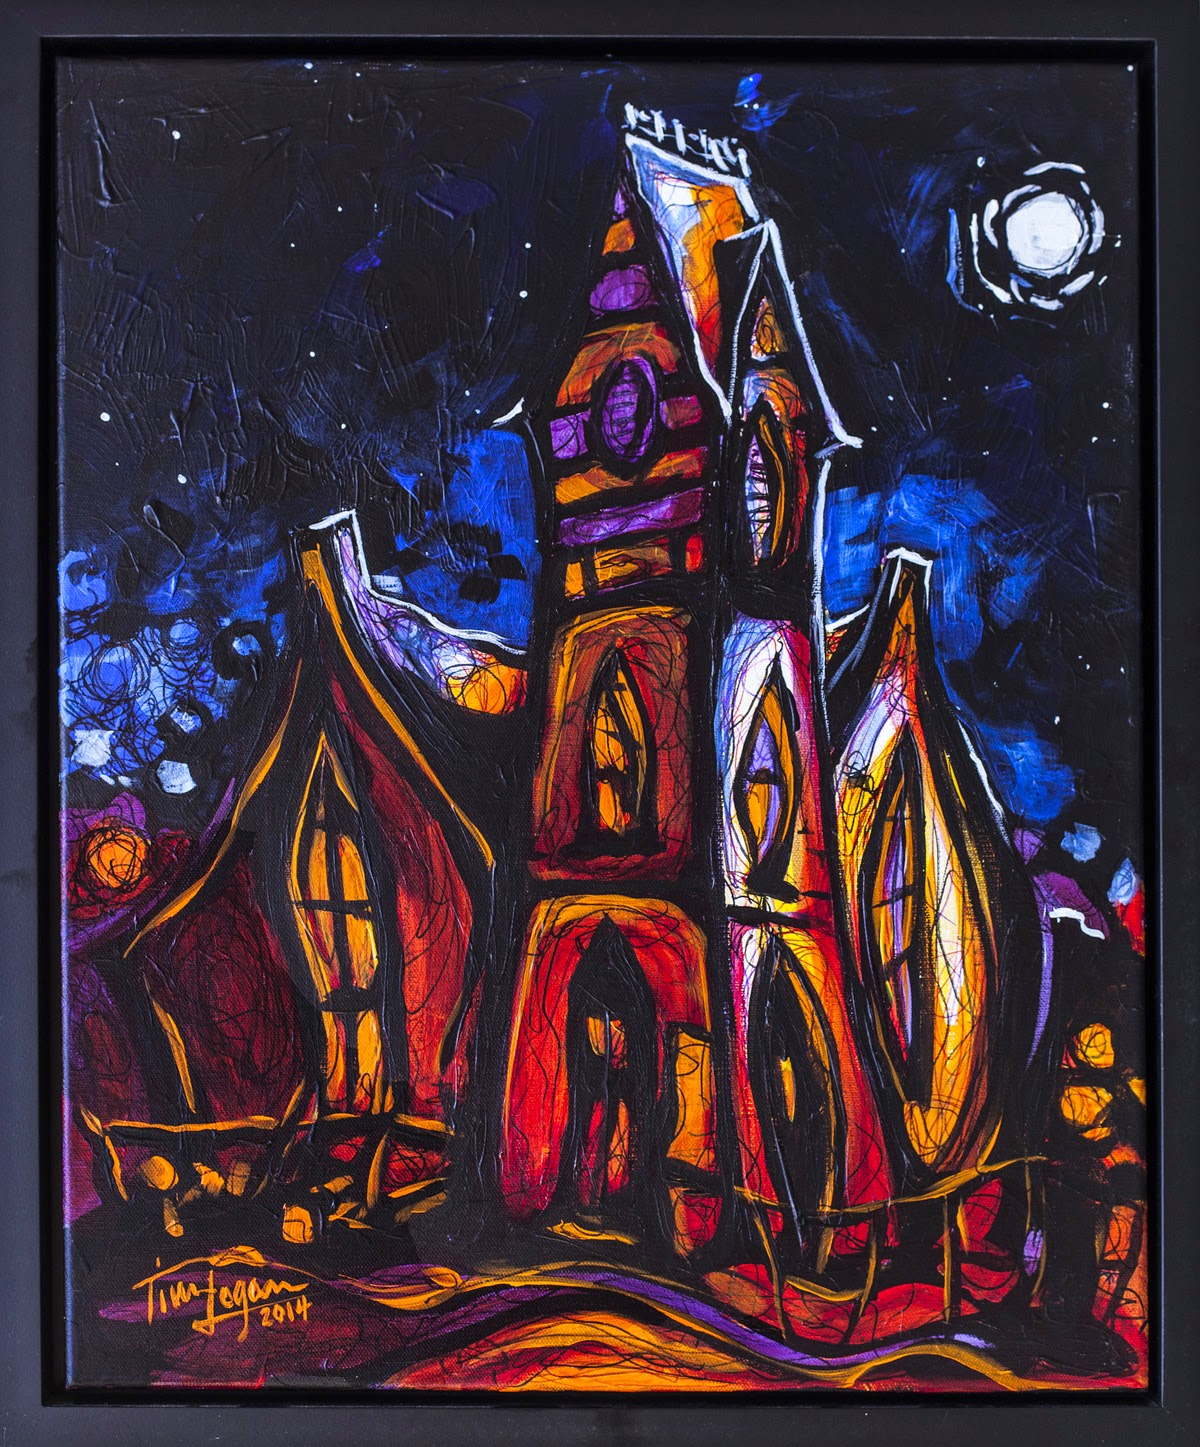 Sonata - First Presbyterian Church Eureka Springs by Tim Logan